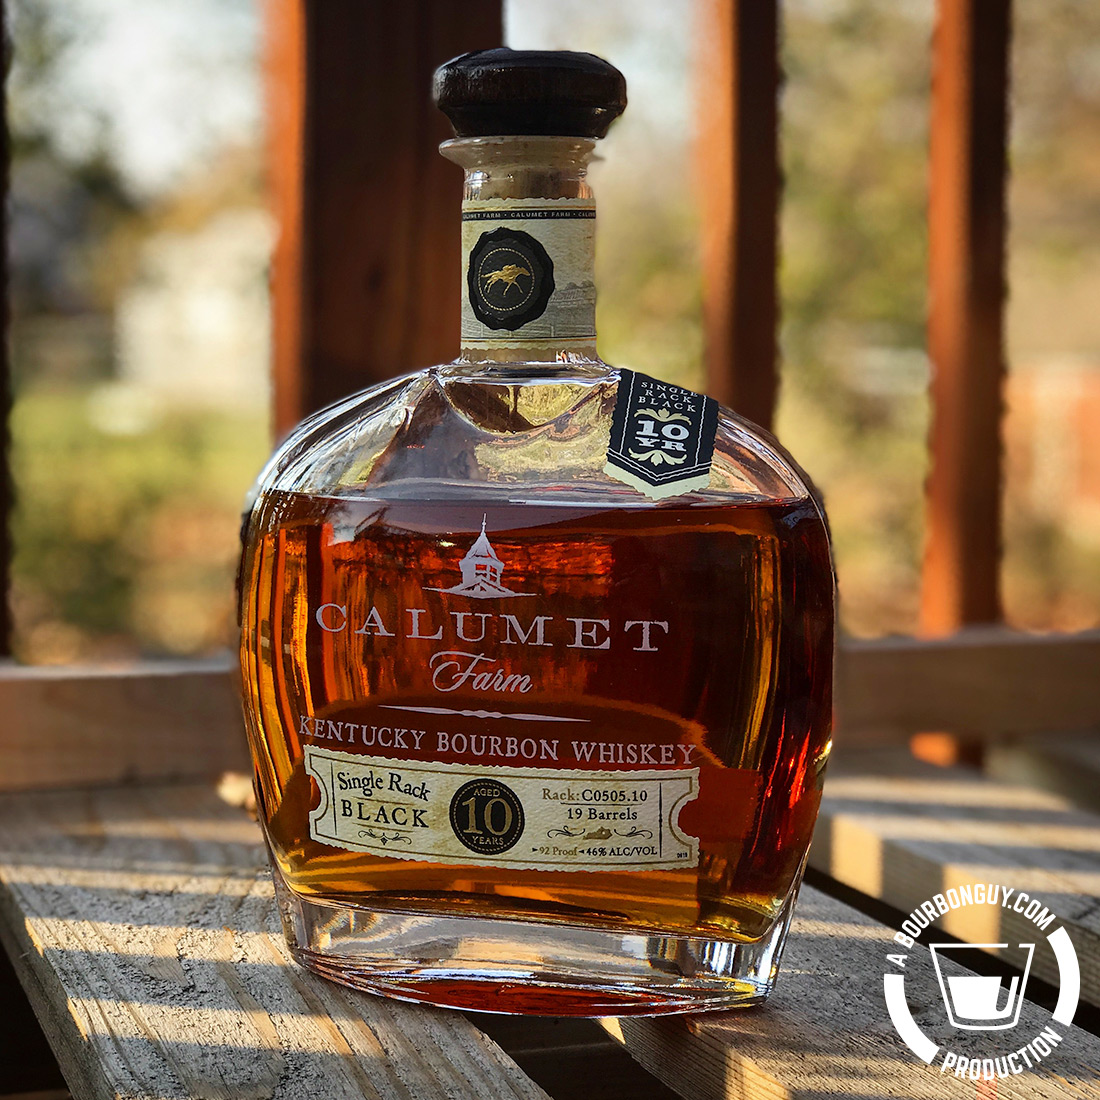 IMAGE: Calumet Farm 10-year-old Single Rack Black Bourbon